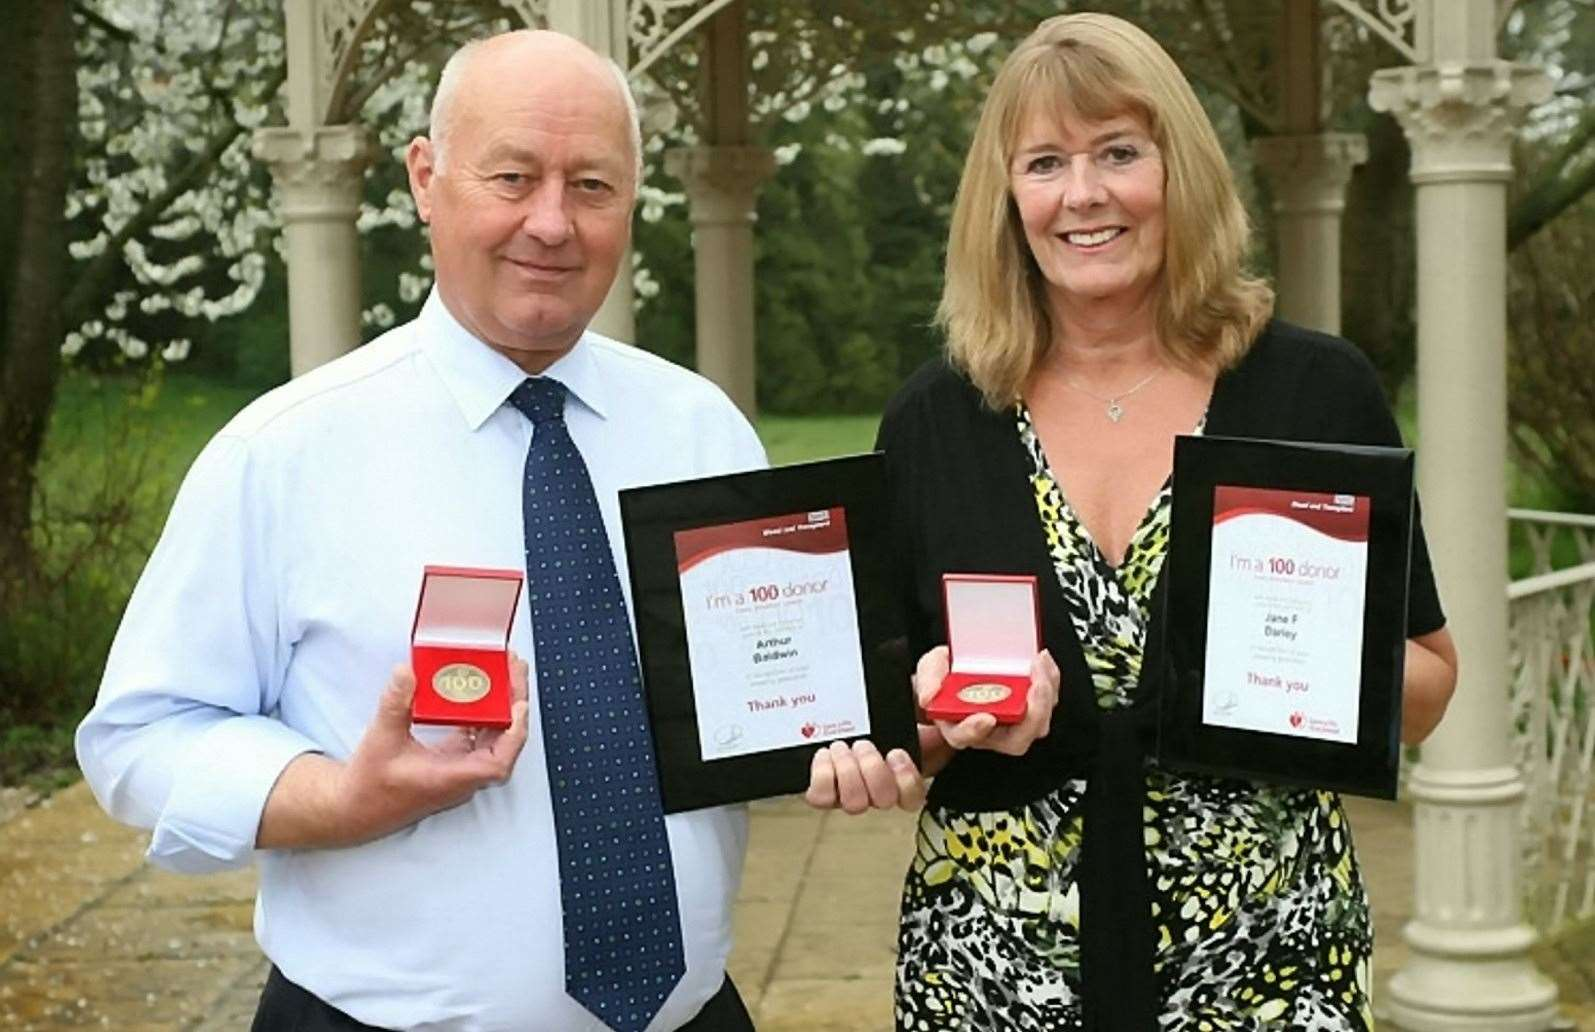 Arthur Baldwin and sister Jane Darley were both recognised by NHS Blood and Transplant in 2016 after each of them had donated 100 pints of blood.